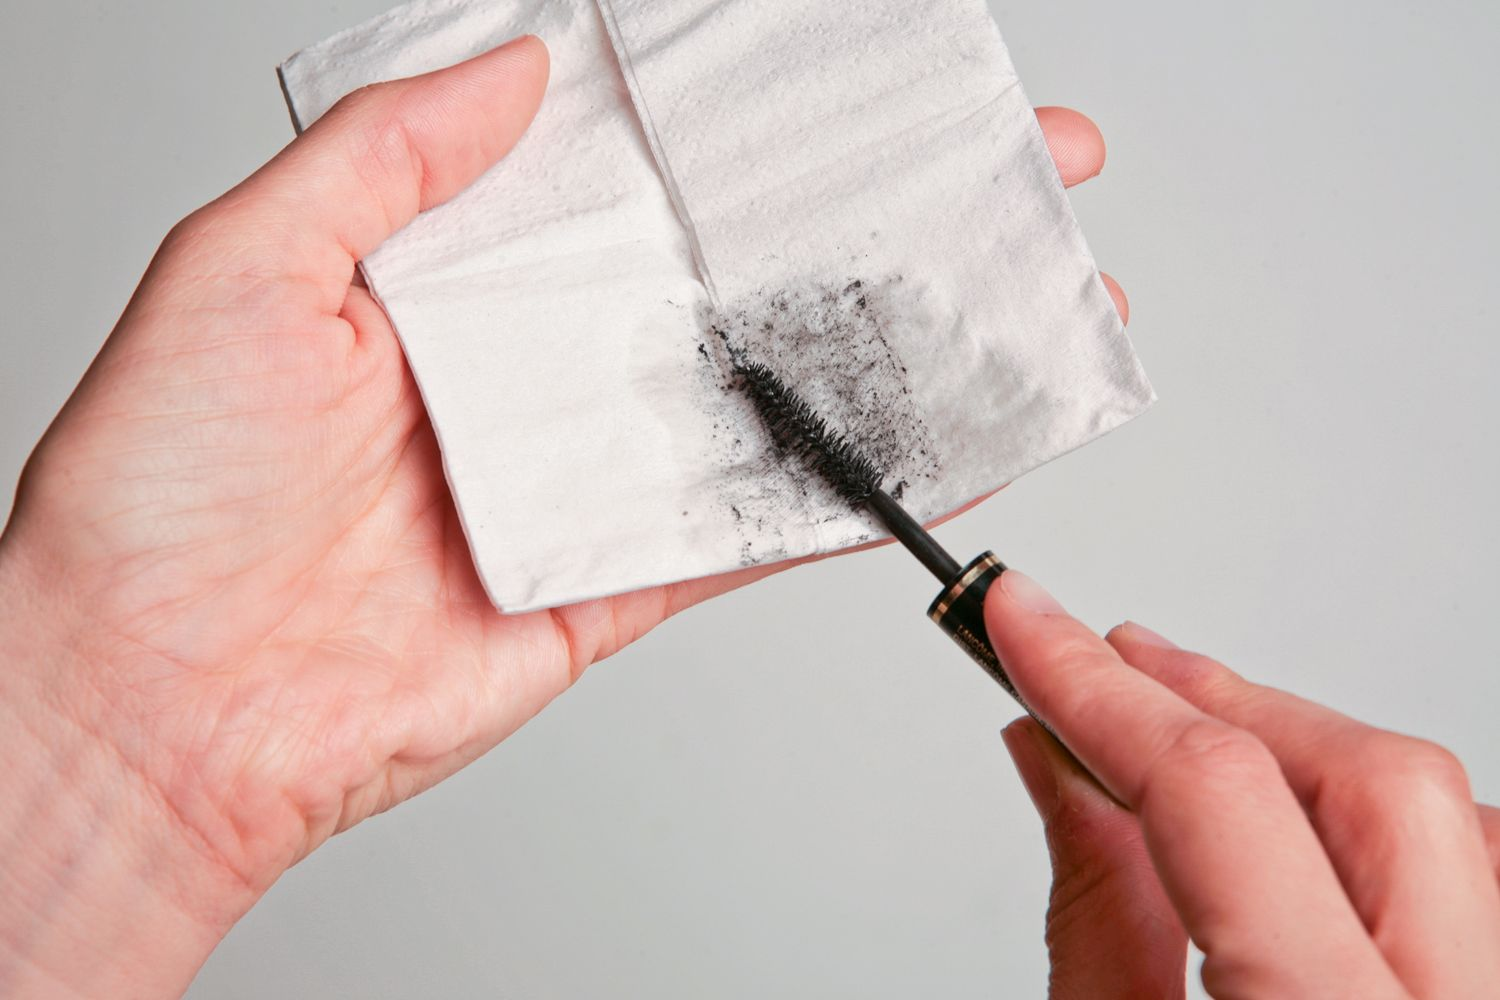 Mascara used on a tissue paper